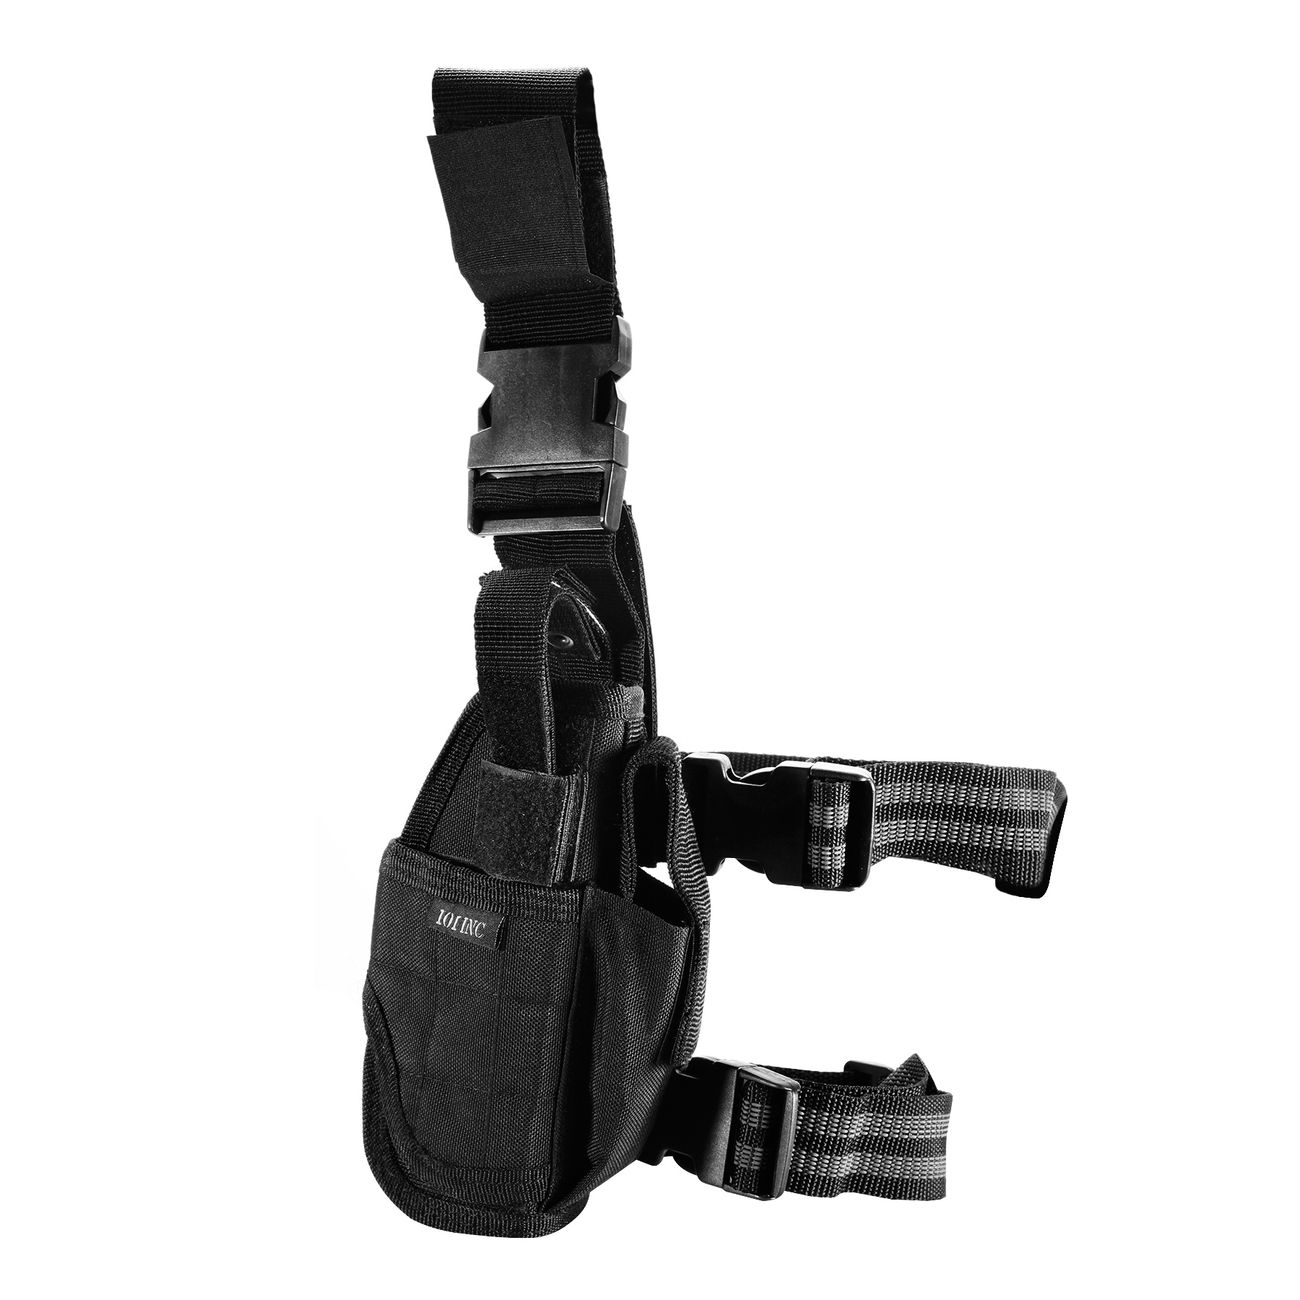 101 INC. Adjustable Holster schwarz 2